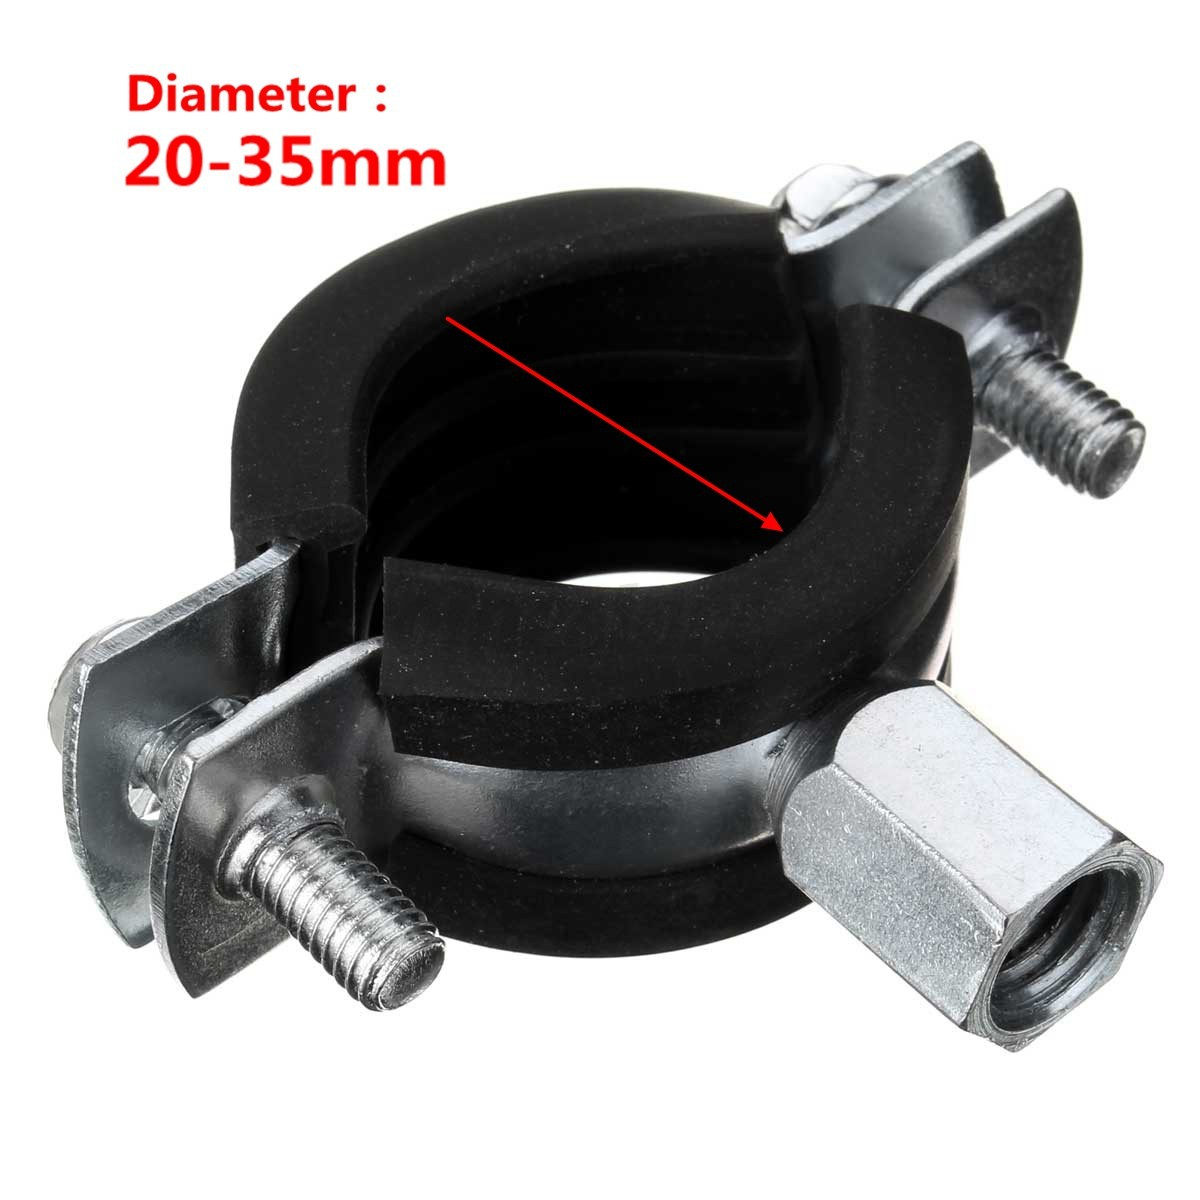 Rubber lined anti vibration pipe tube fixing clips clamps